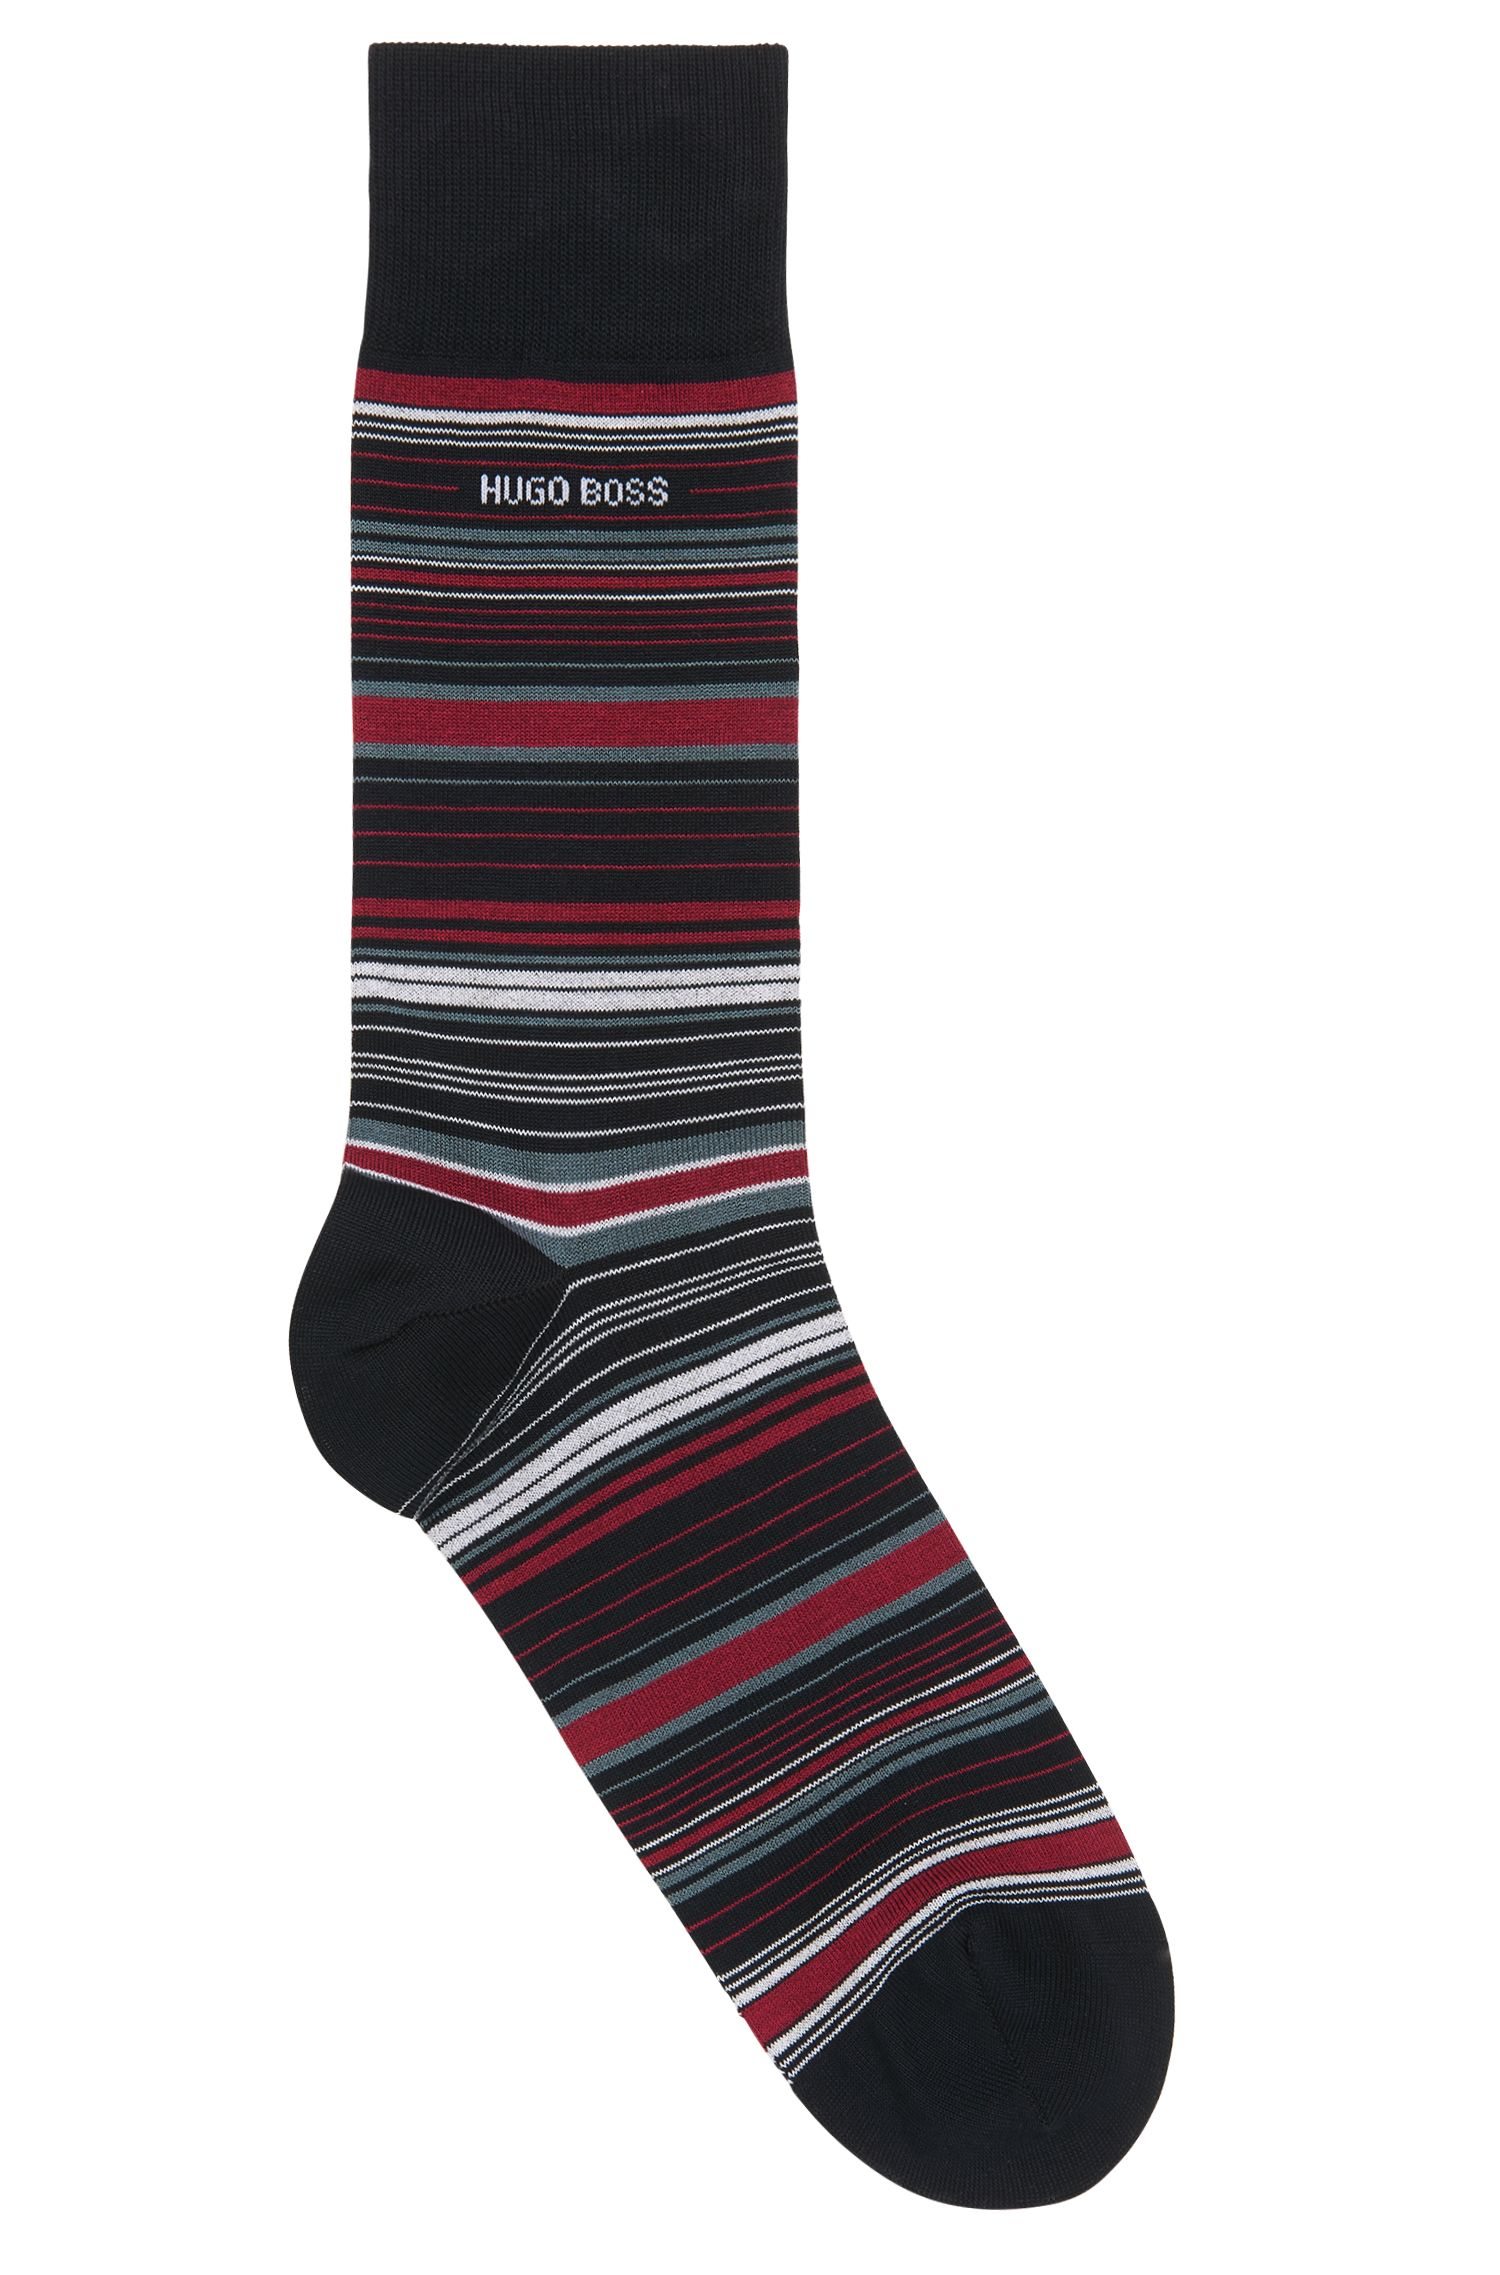 Striped socks in a mercerised cotton blend